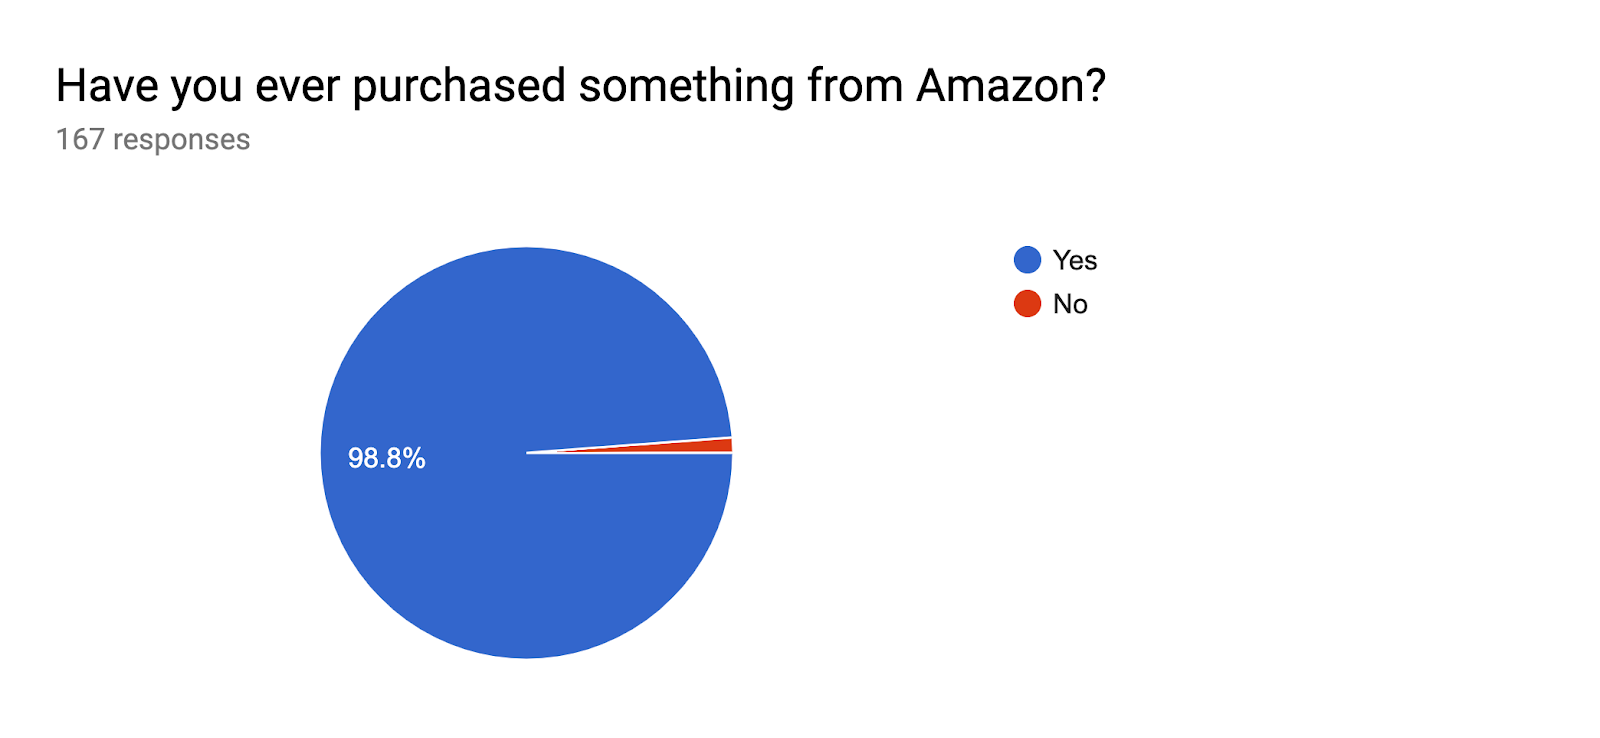 Forms response chart. Question title: Have you ever purchased something from Amazon?. Number of responses: 167 responses.